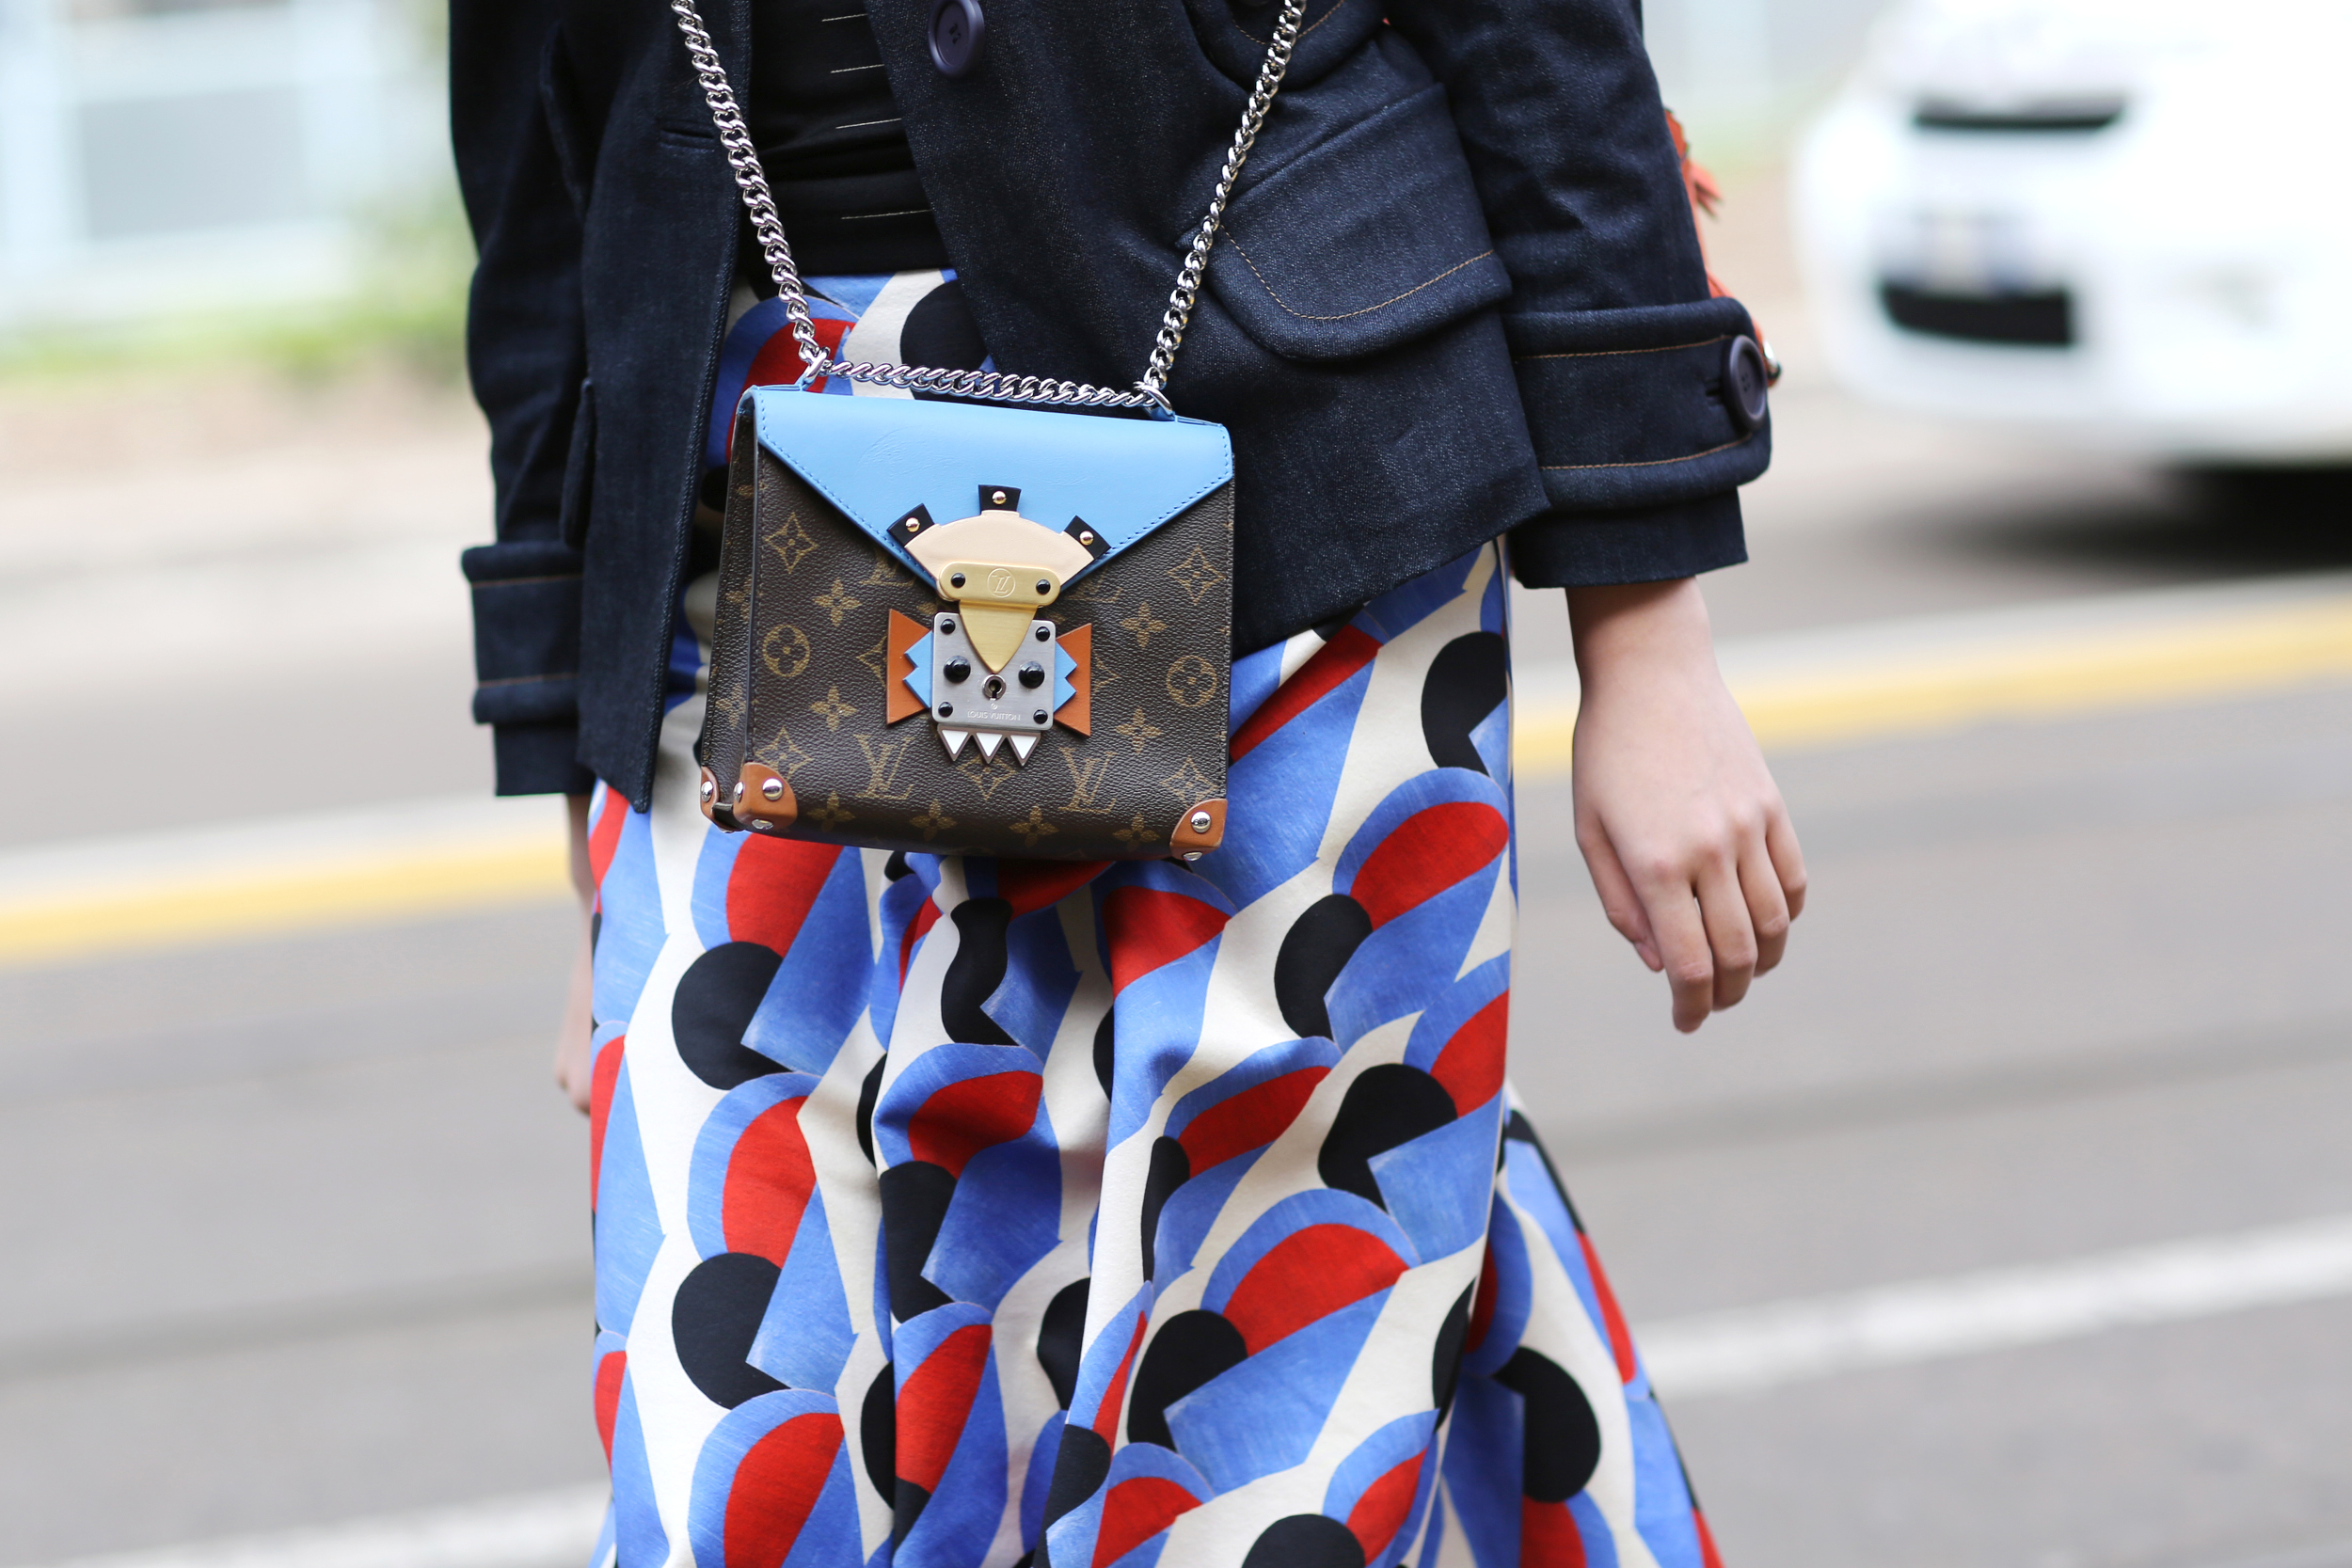 Milan Fashion Week Fall: Street Style mit Bag von Louis Vuitton (ddp images)